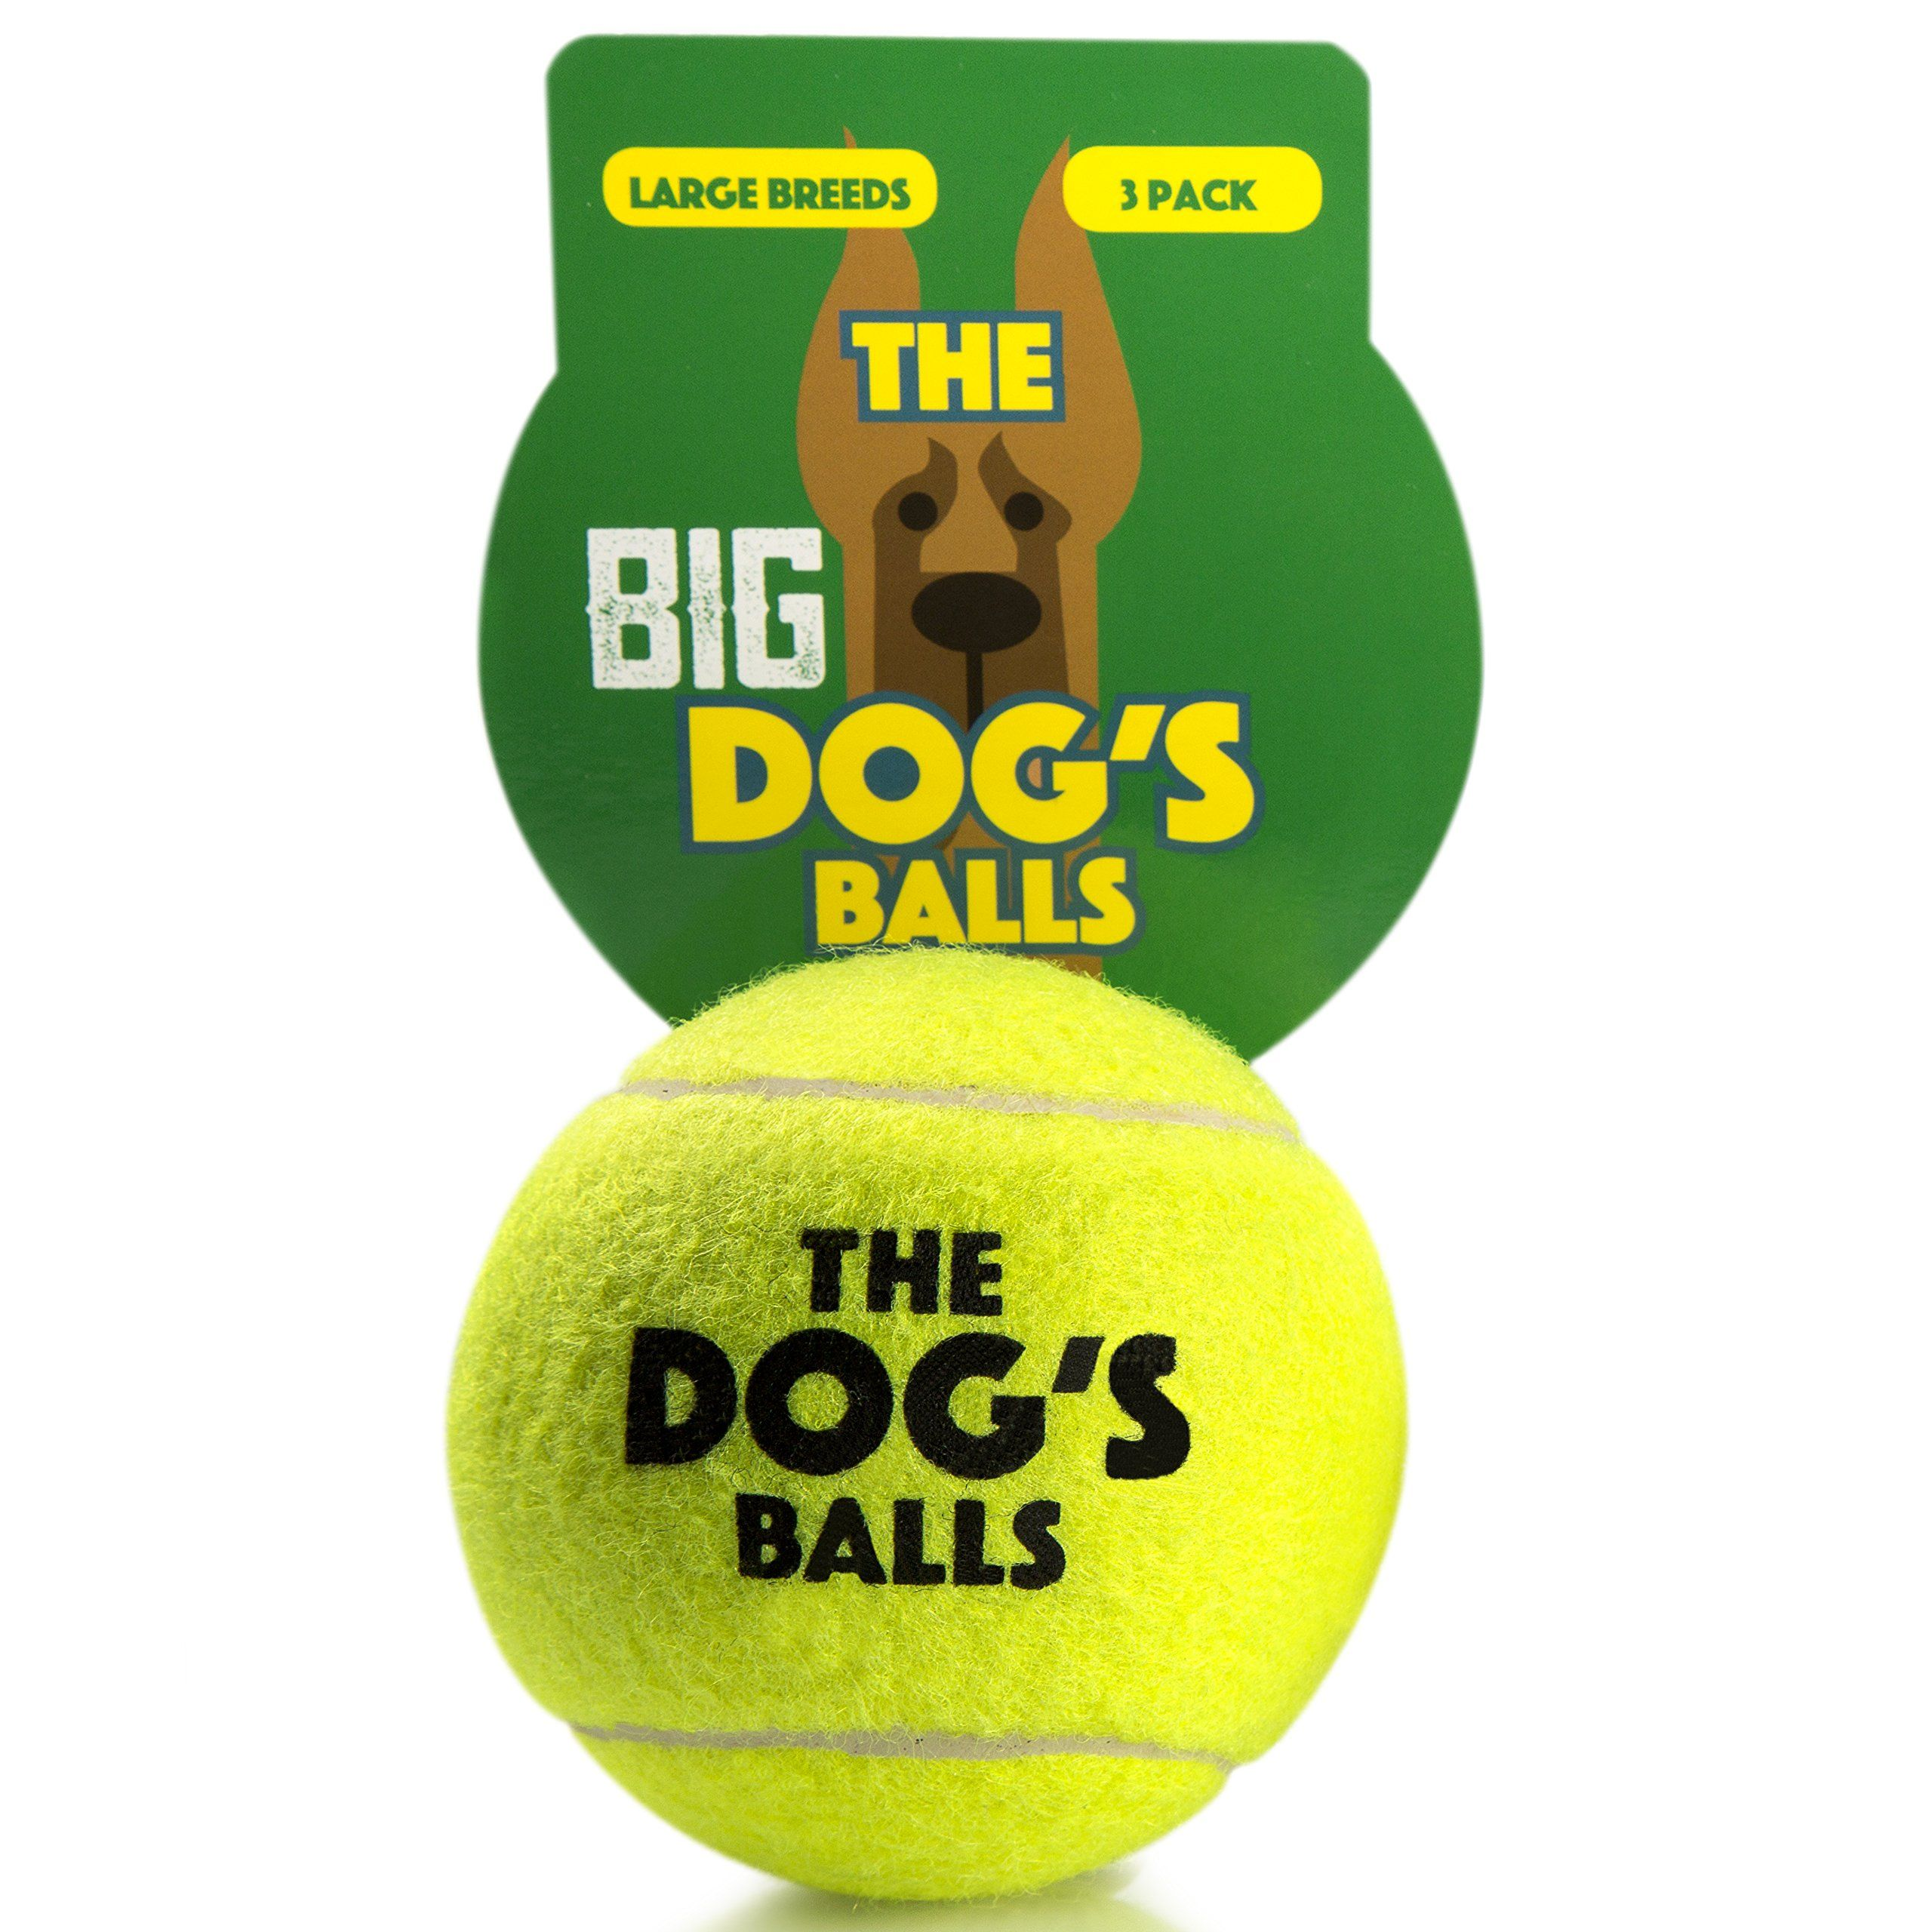 The Dogs Balls 3 Large Yellow Tennis Balls Premium Strong Dog Toy Ball For Dog Fetch And Play Large Dogs Balls Too Big Fo Dog Toy Ball Strong Dog Toys Dog Ball